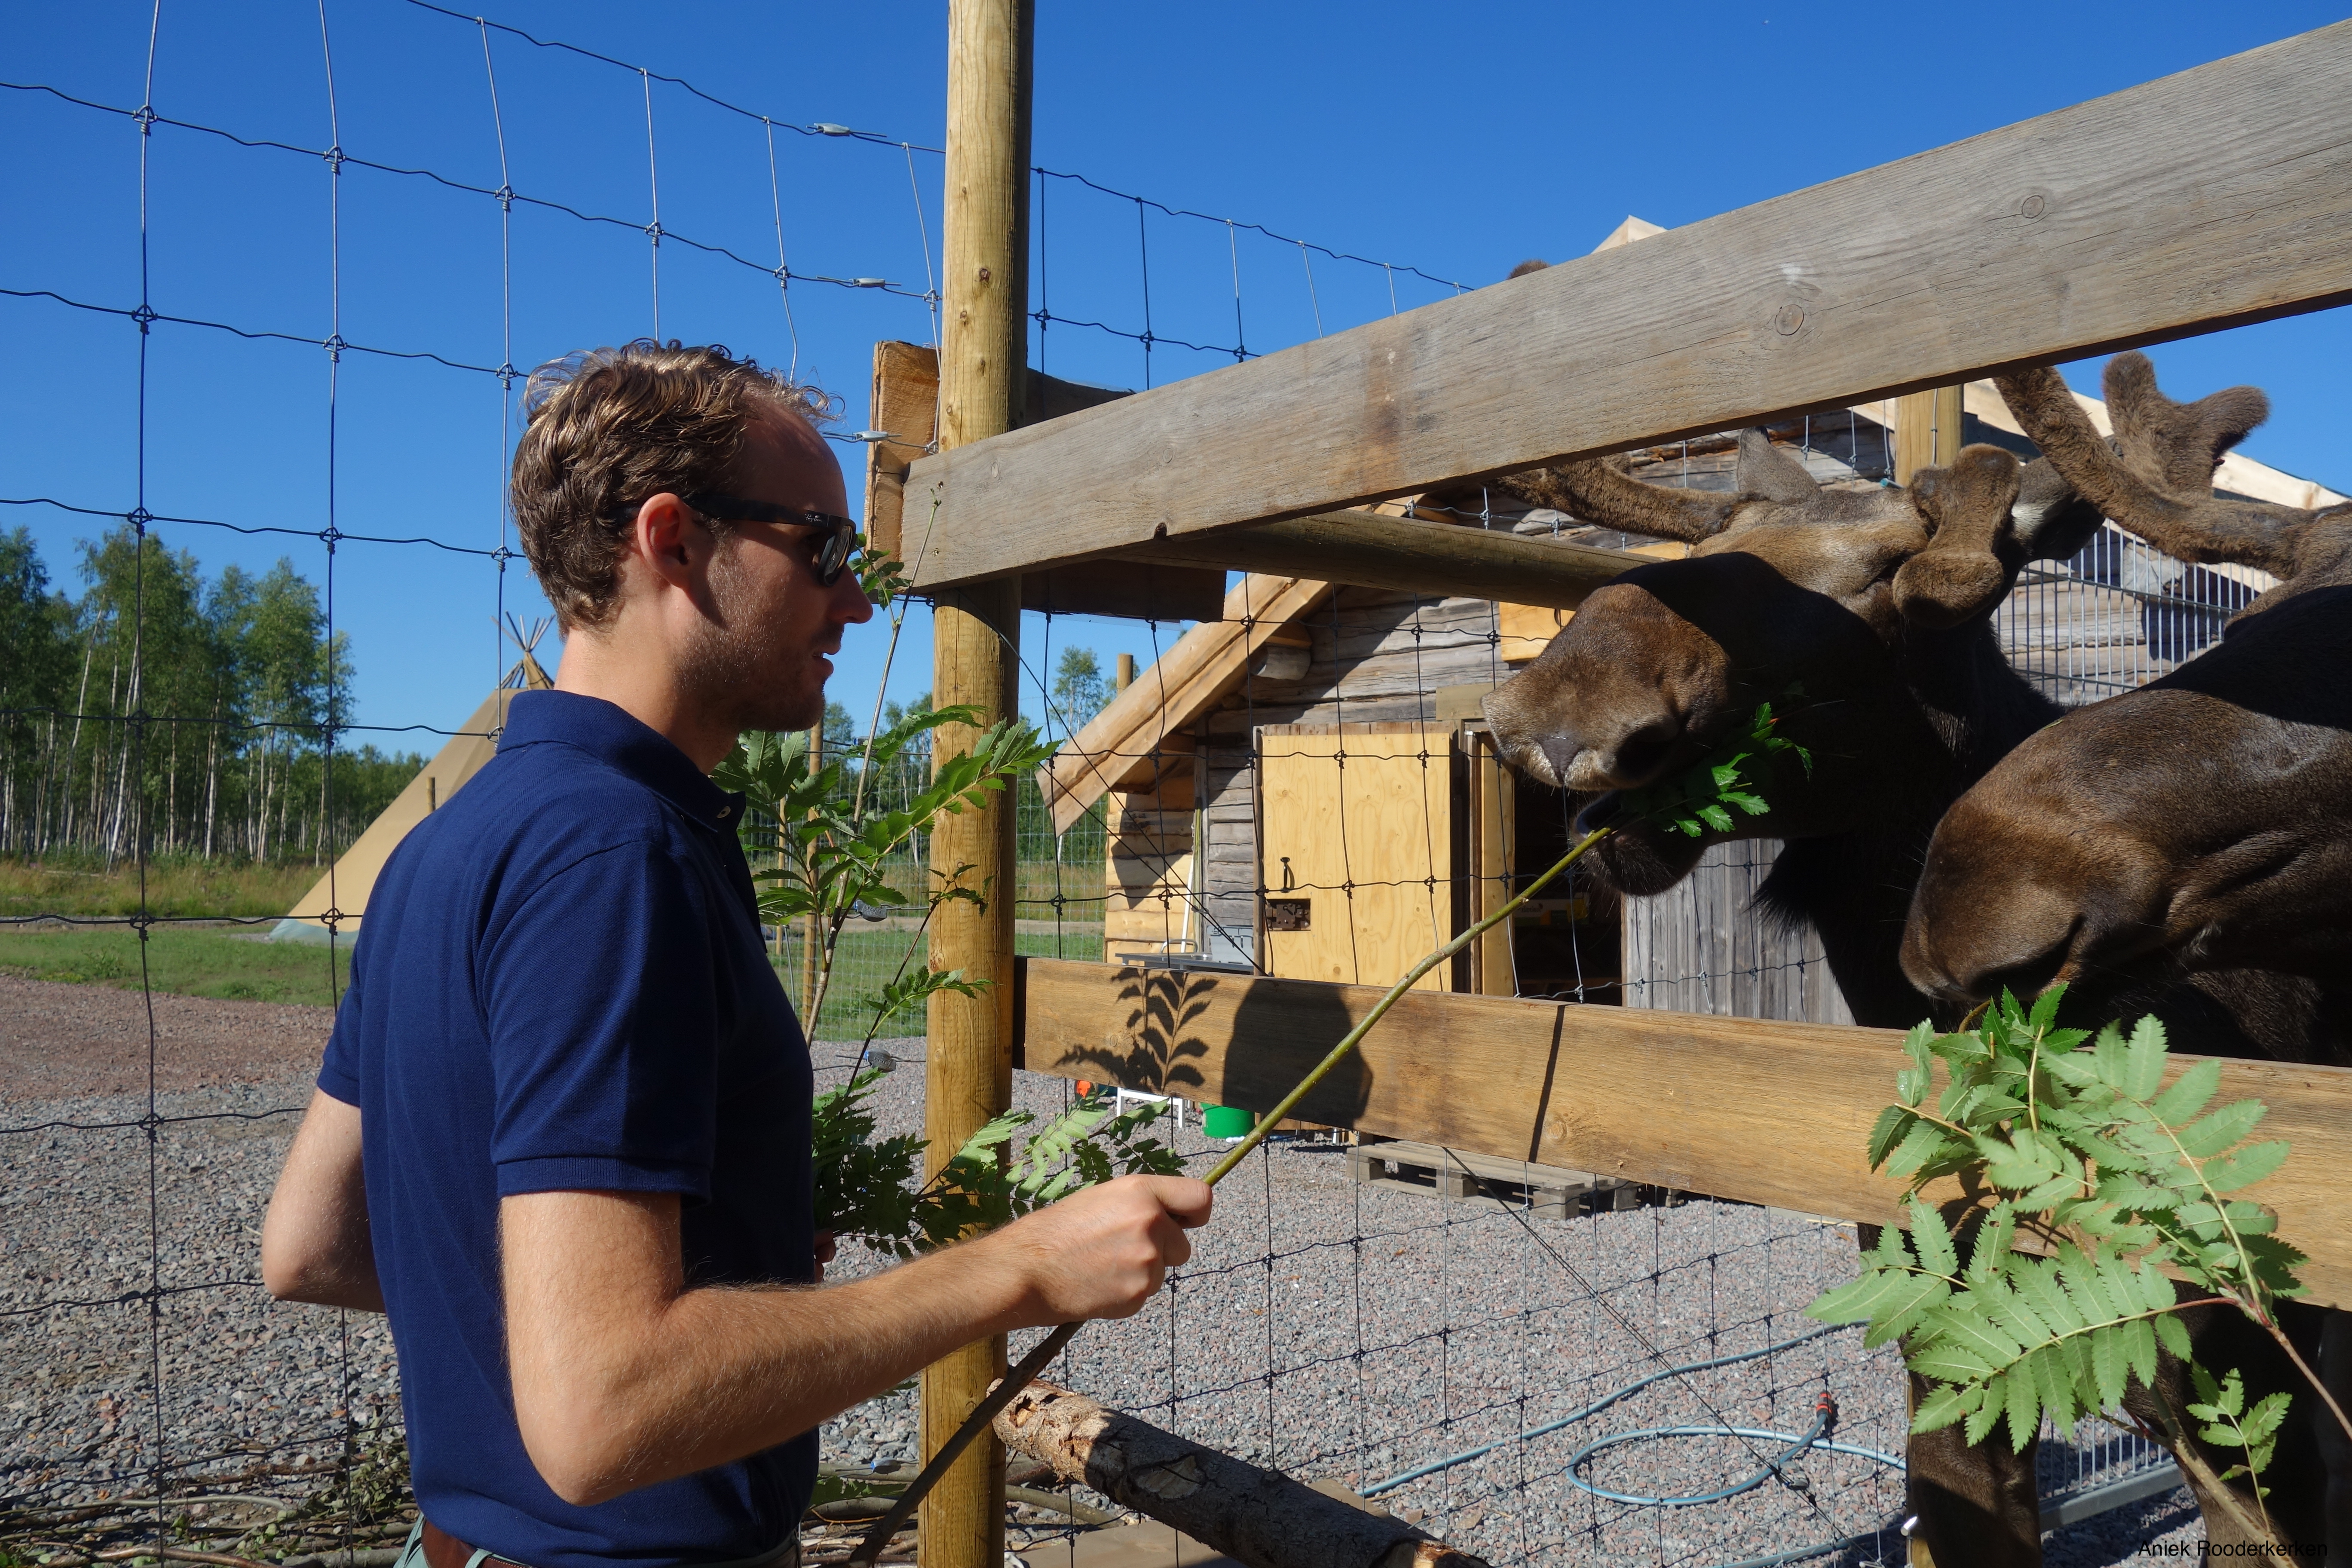 Feeding birch twigs to the tame moose at Camp Wild in Swedish Lapland